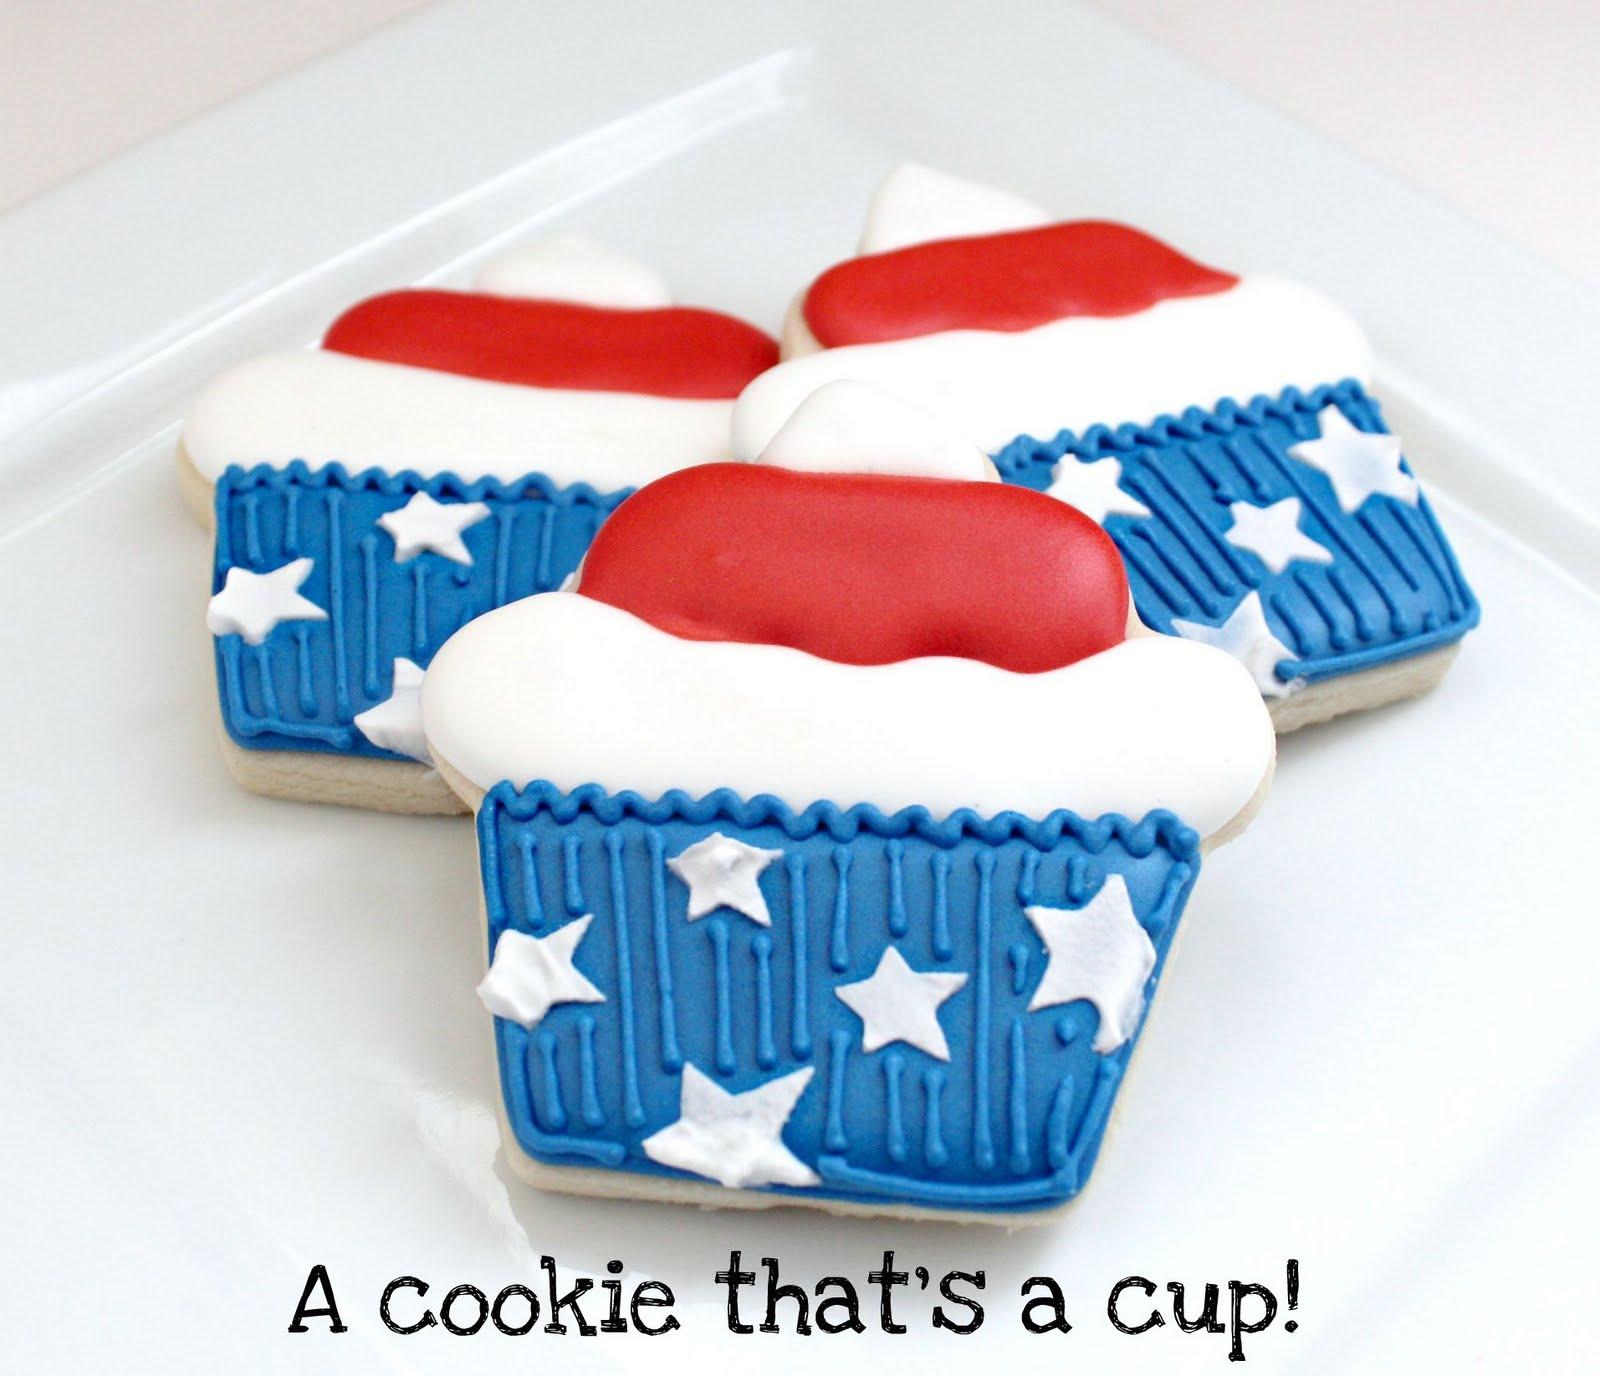 3 stars and stripes cupcake cookies stacked on a plate